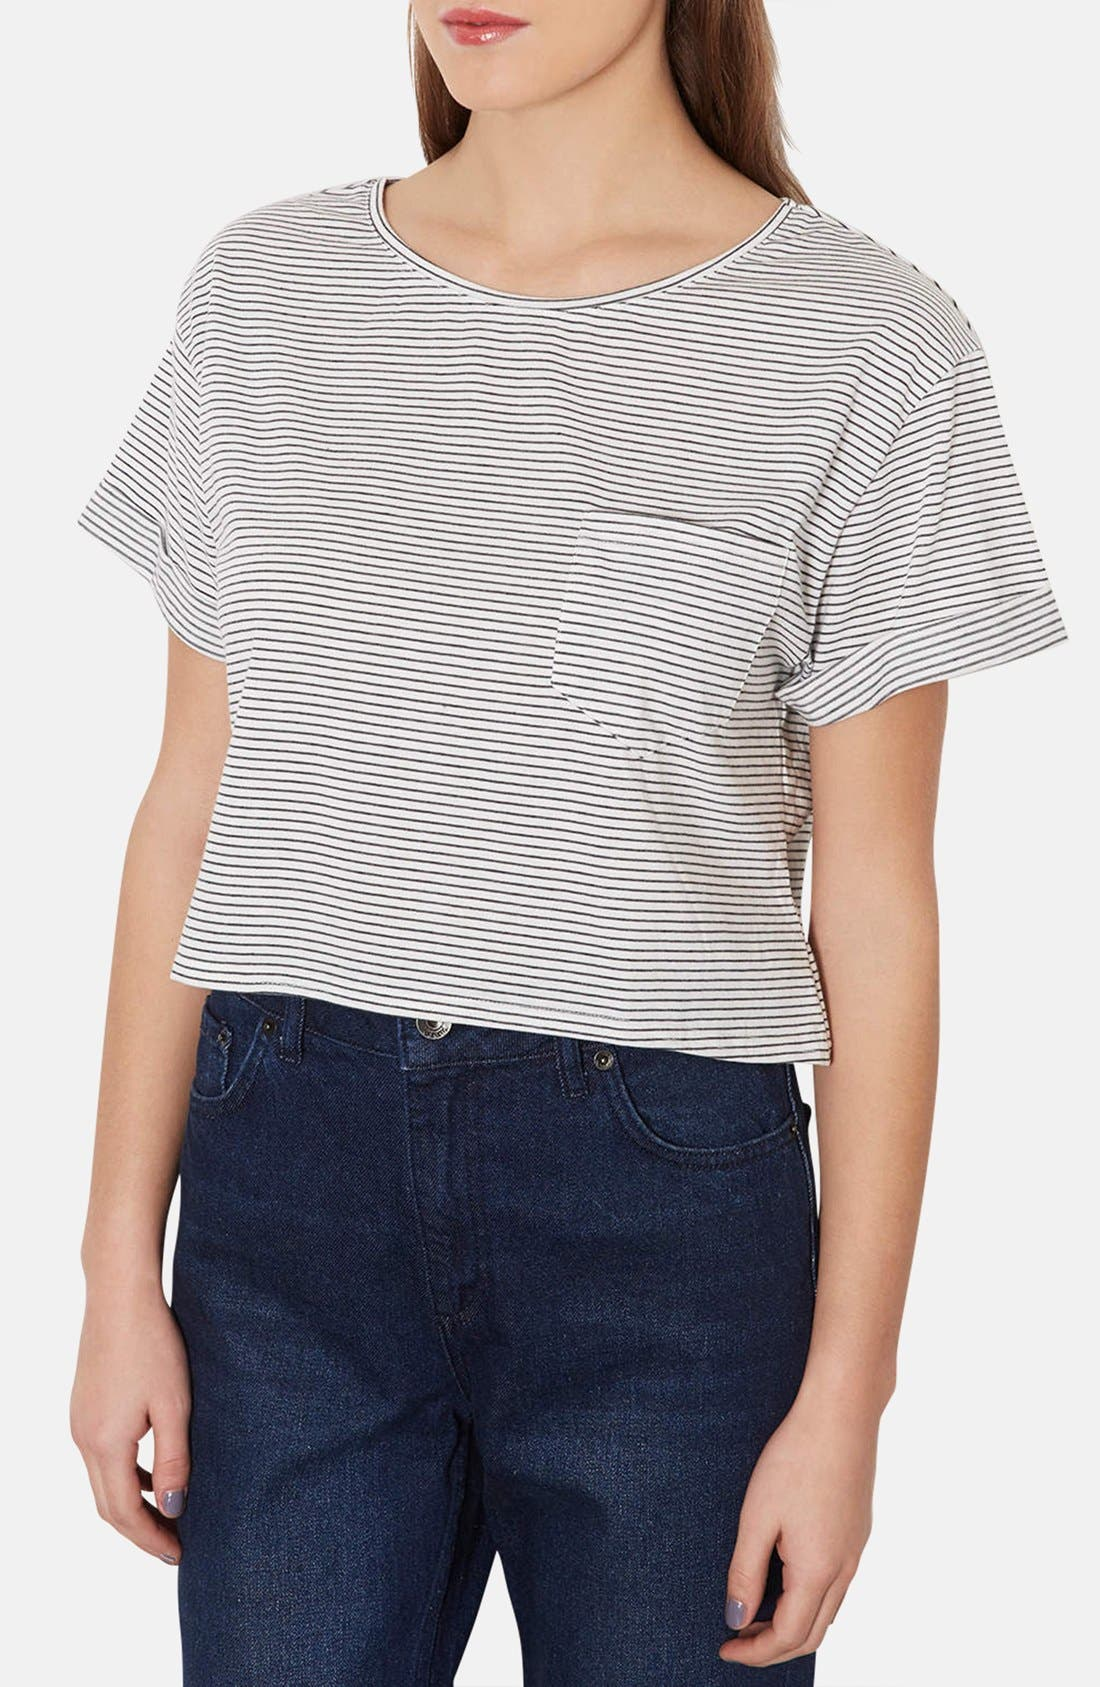 Alternate Image 1 Selected - Topshop Cotton Crop Tee (Petite)